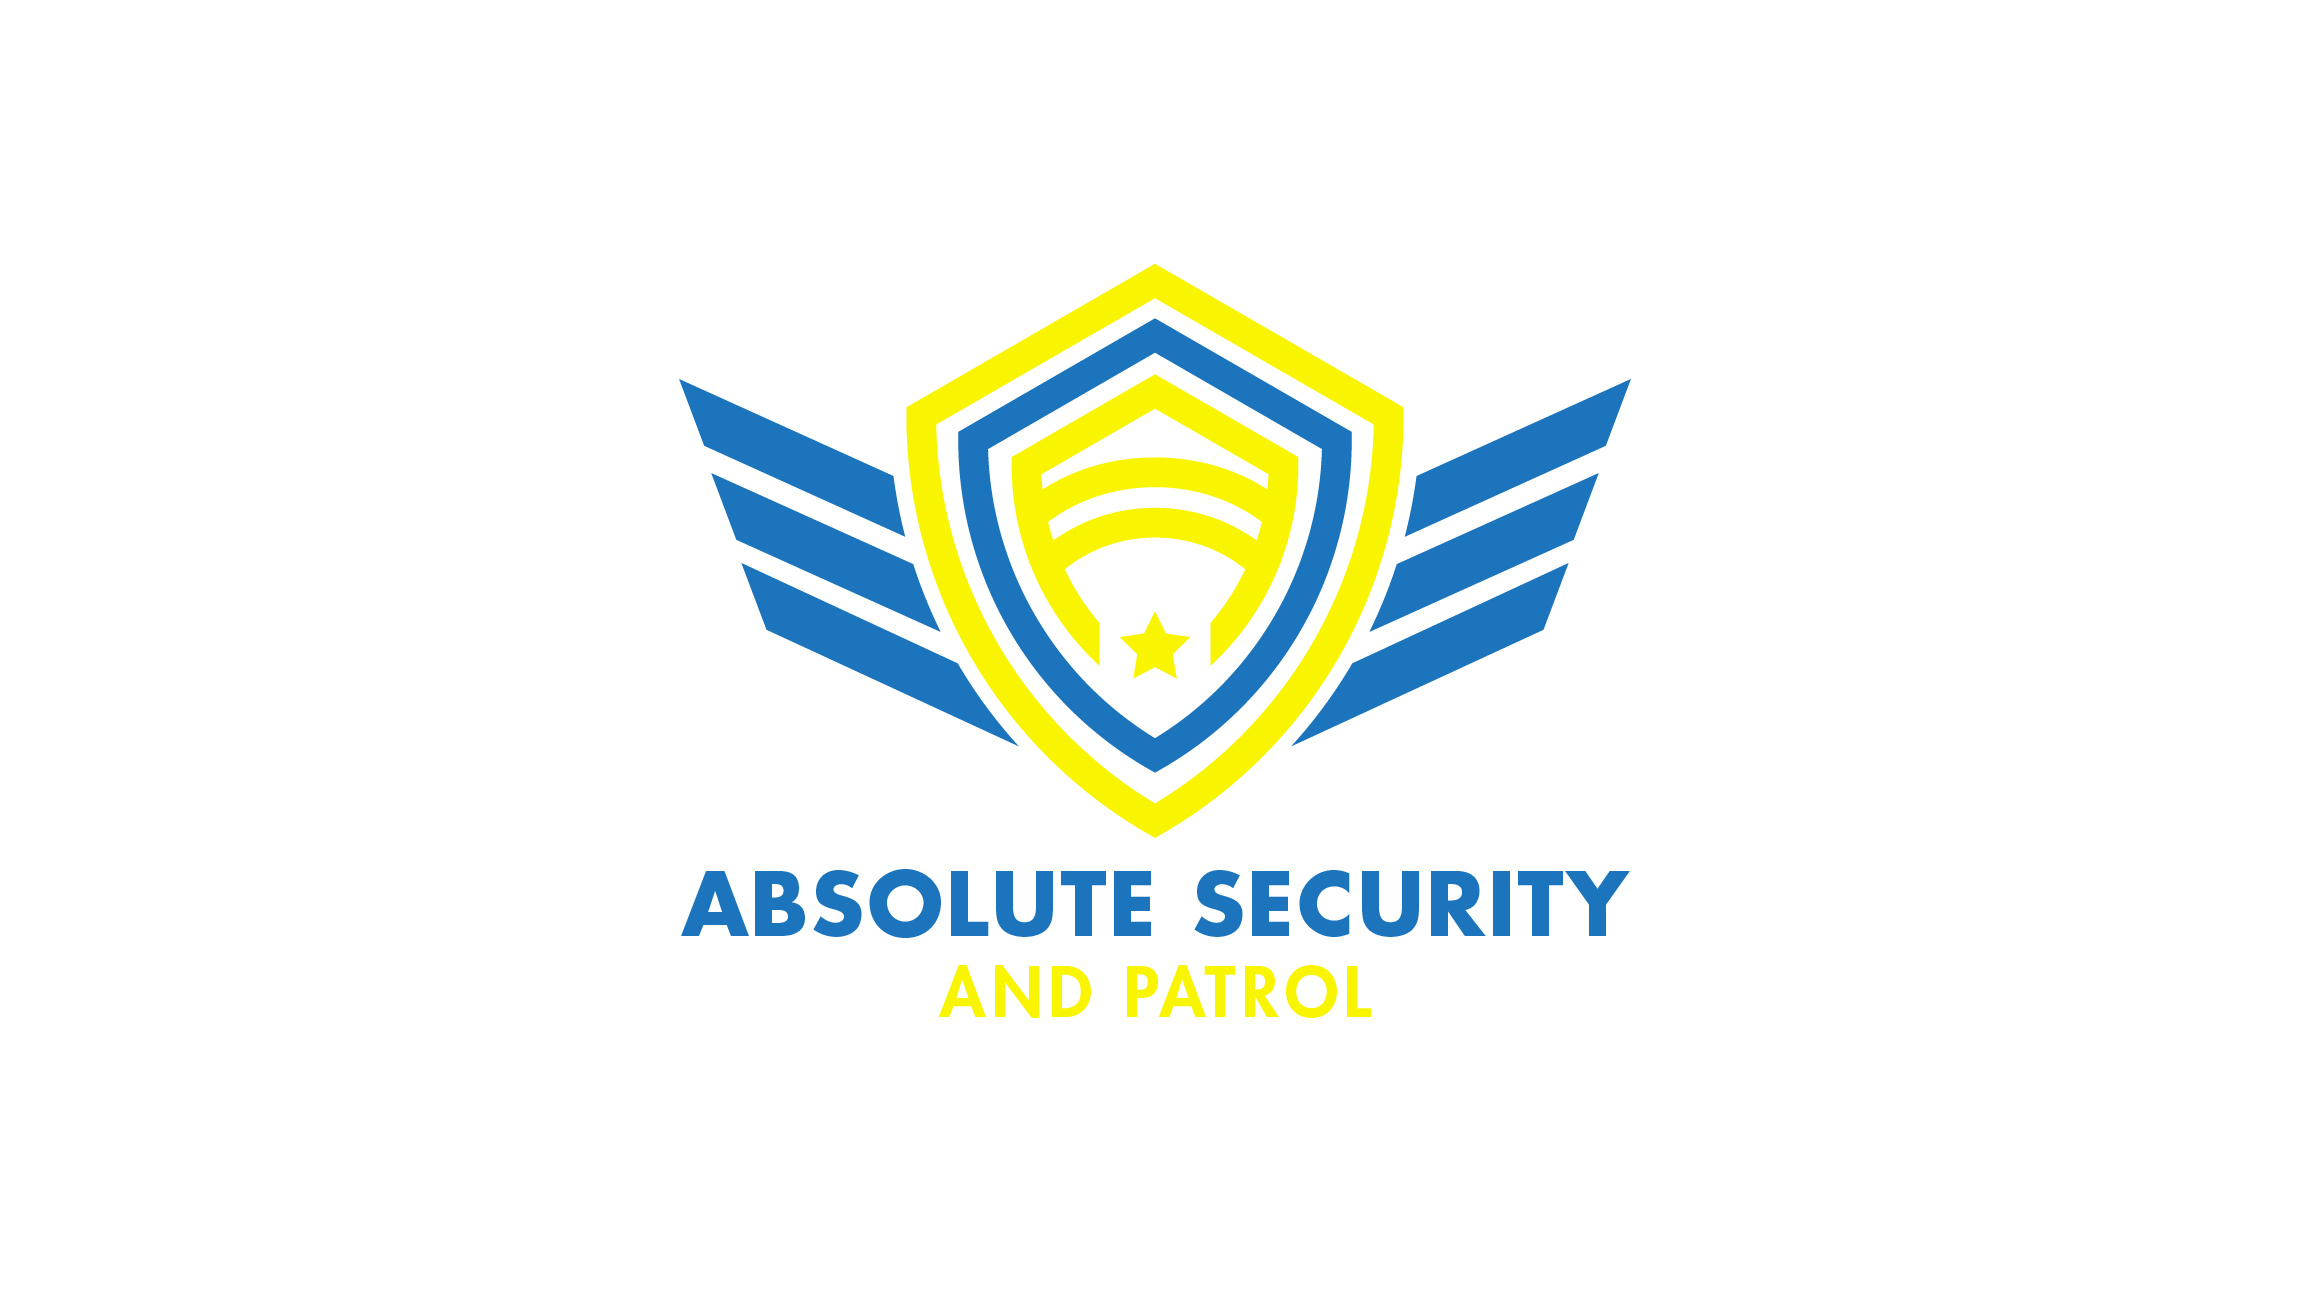 Absolute Security and Patrol, LLC, Announces New Service Area in Arlington, Texas